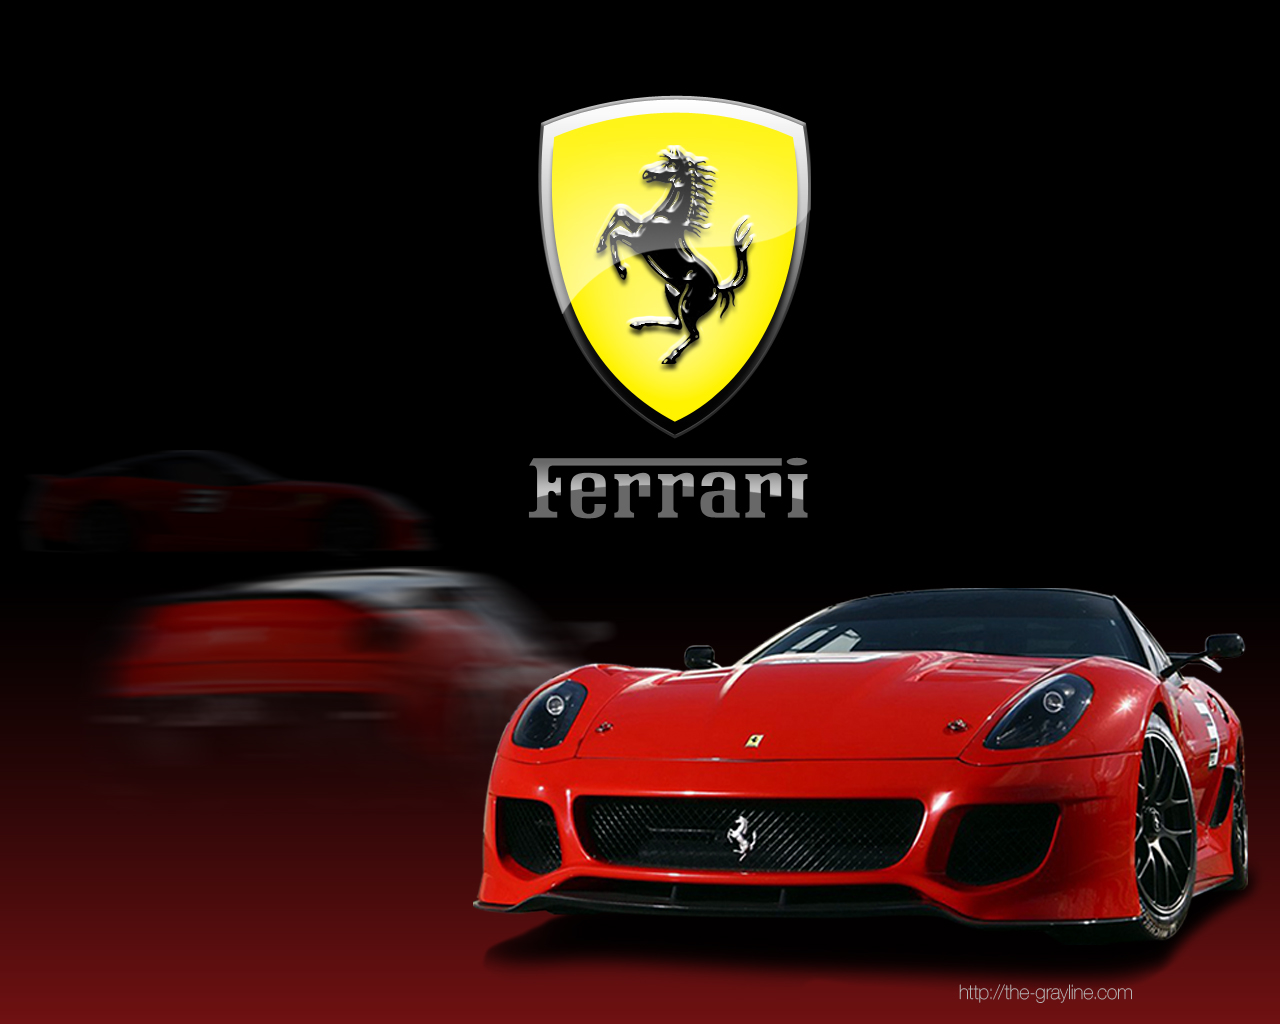 1280 1024 ferrari wallpaper 1280 1024 ferrari wallpaper 1280x1024